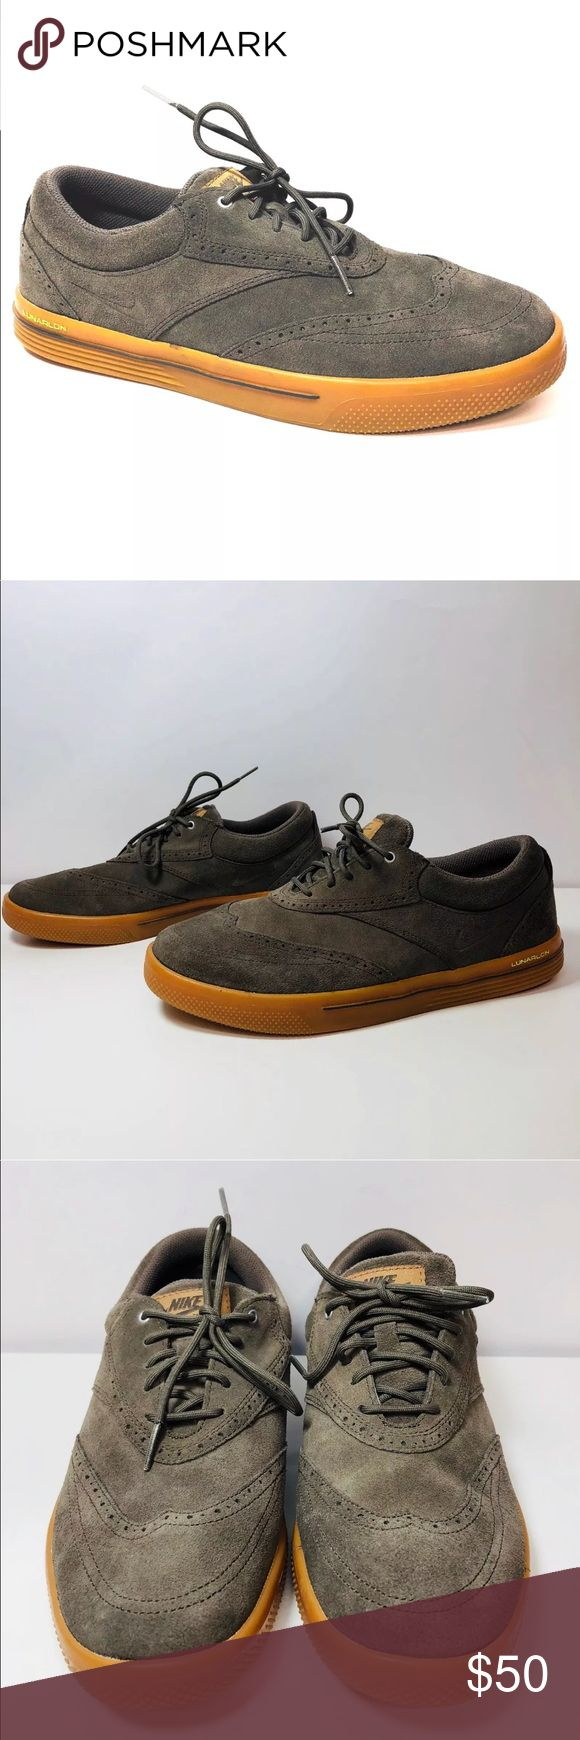 Nike Lunar Swingtip Suede SD GolfShoes  Ridgerock Thanks for stopping by!!!  Item: Nike Lunar Swingtip Suede SD Mens Golf Shoes 533094-200 Ridgerock Size 9 EUC  Condition: In excellent used condition.  Please refer to images for more details about this it